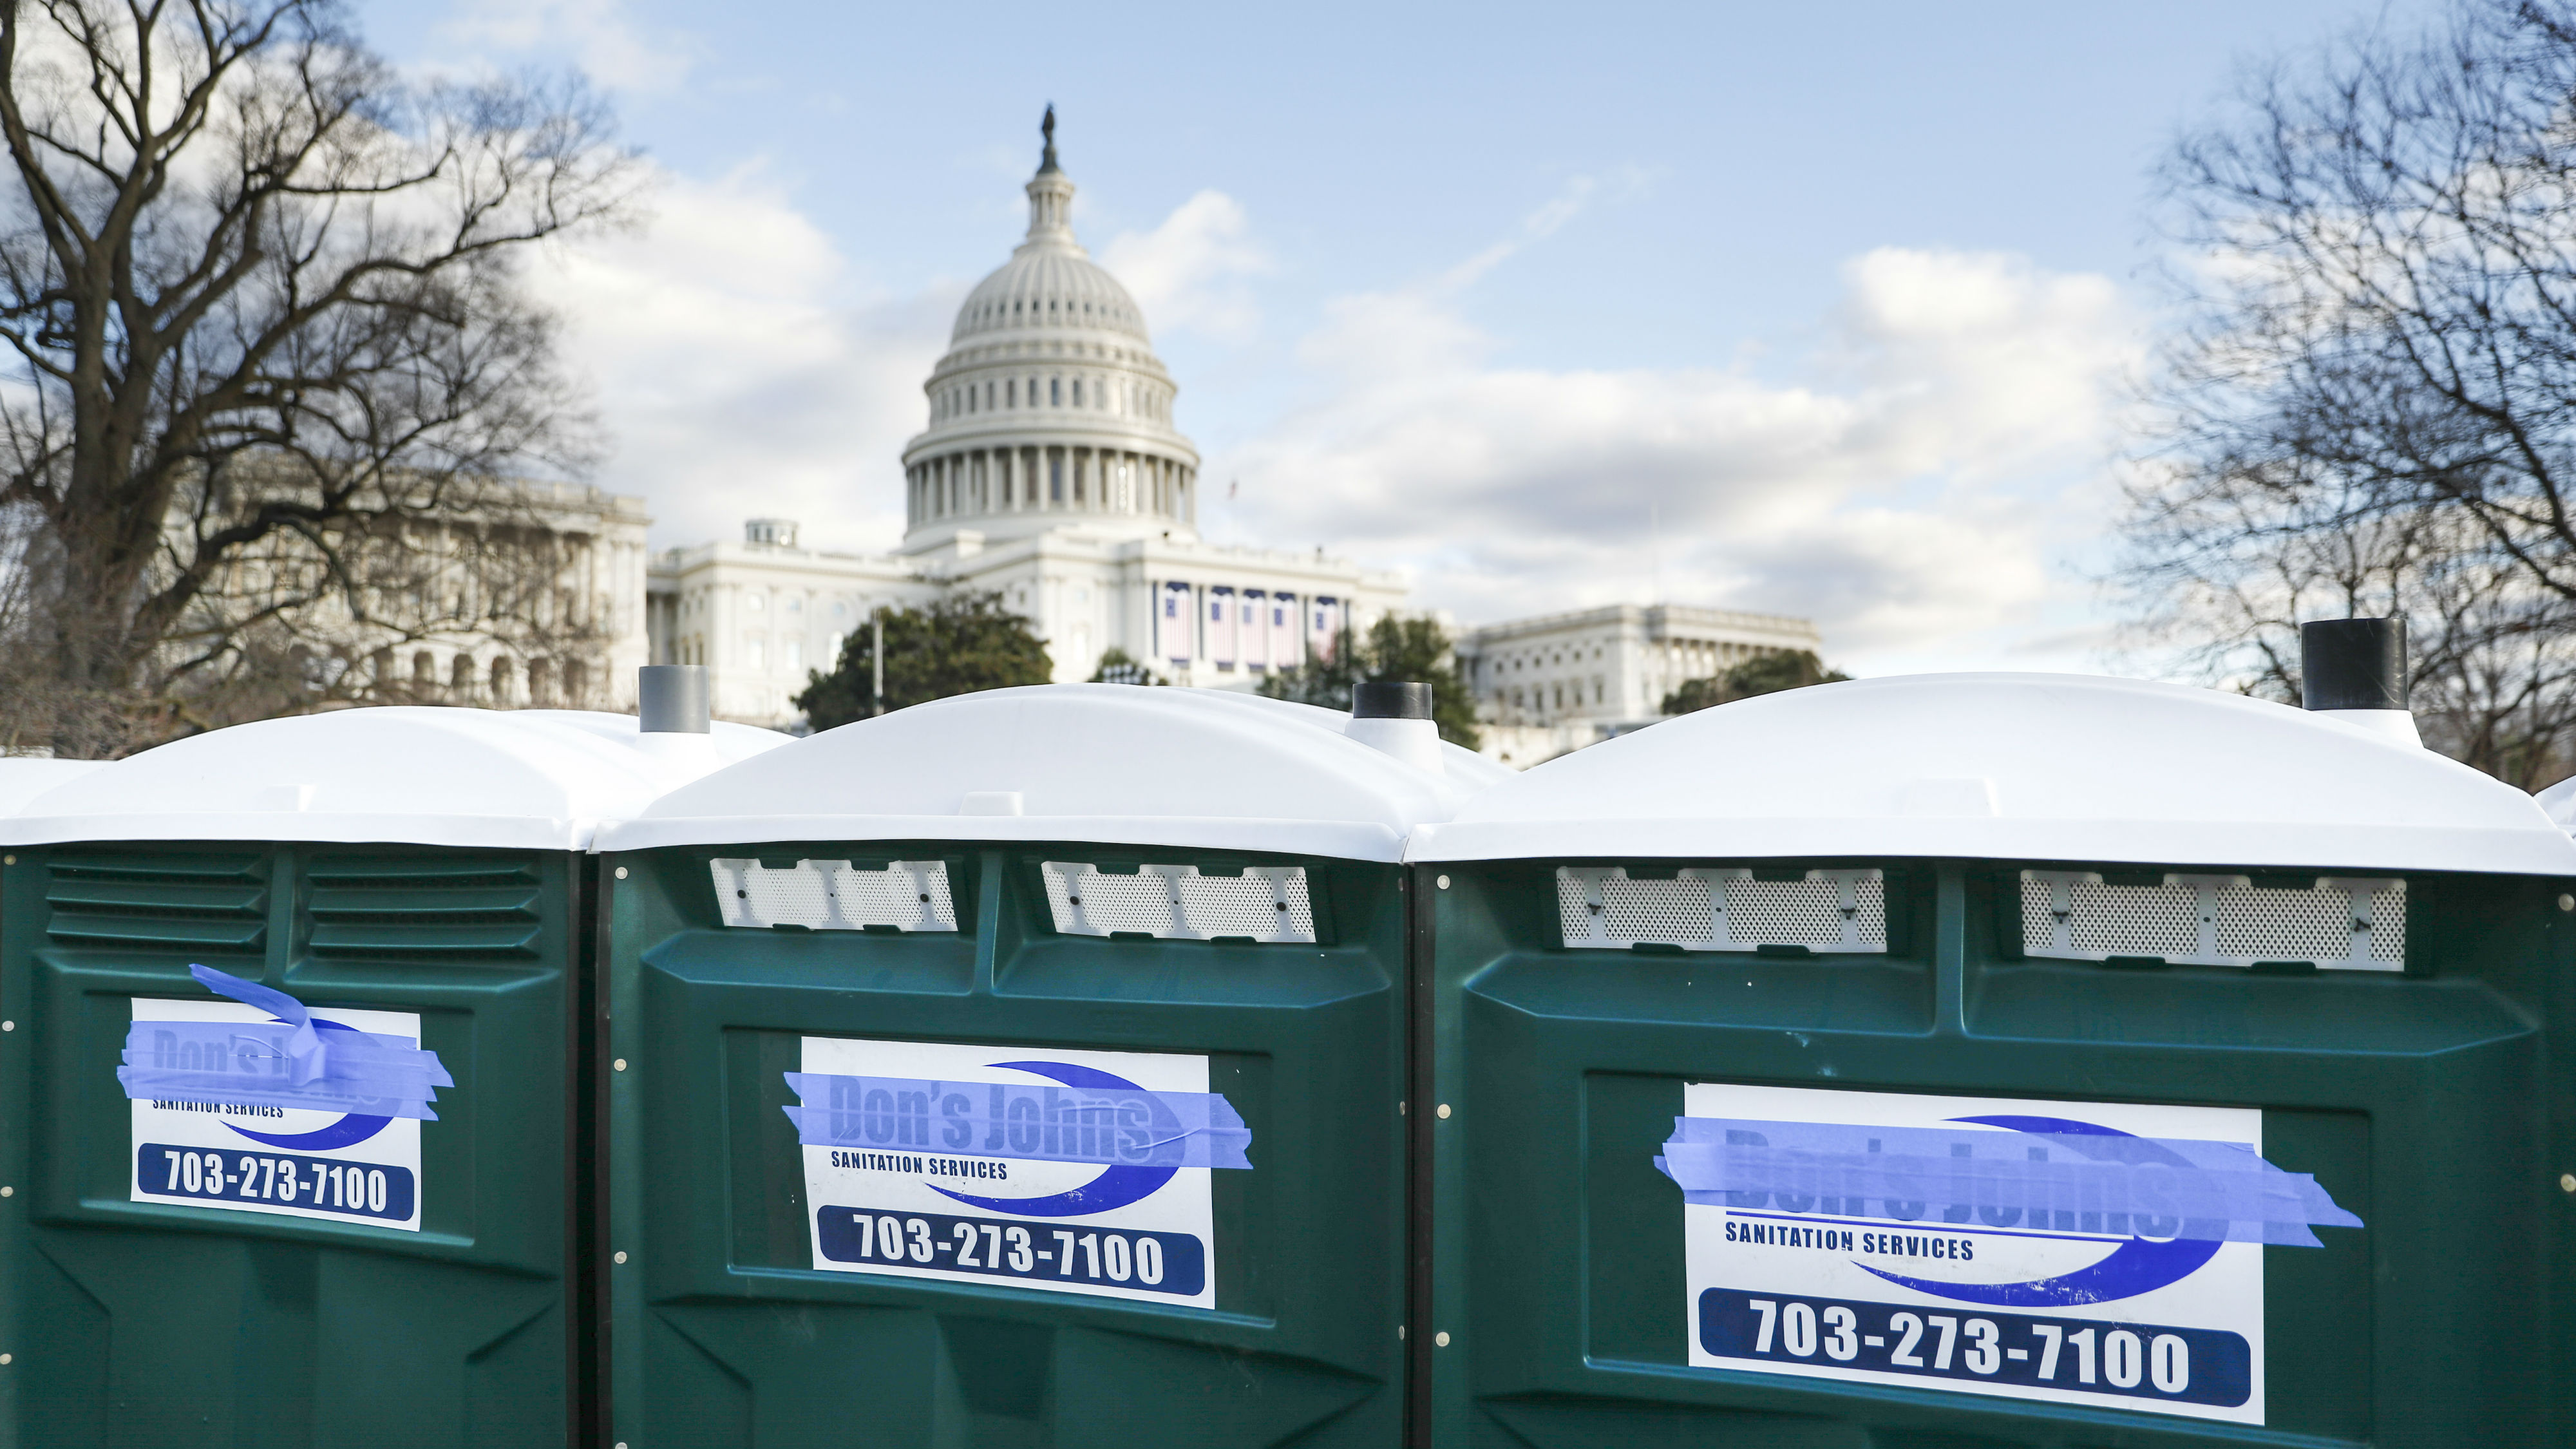 Three port-a-potties outside of the US Capitol. The logo of their company—Don's John's—has been covered with blue tape.